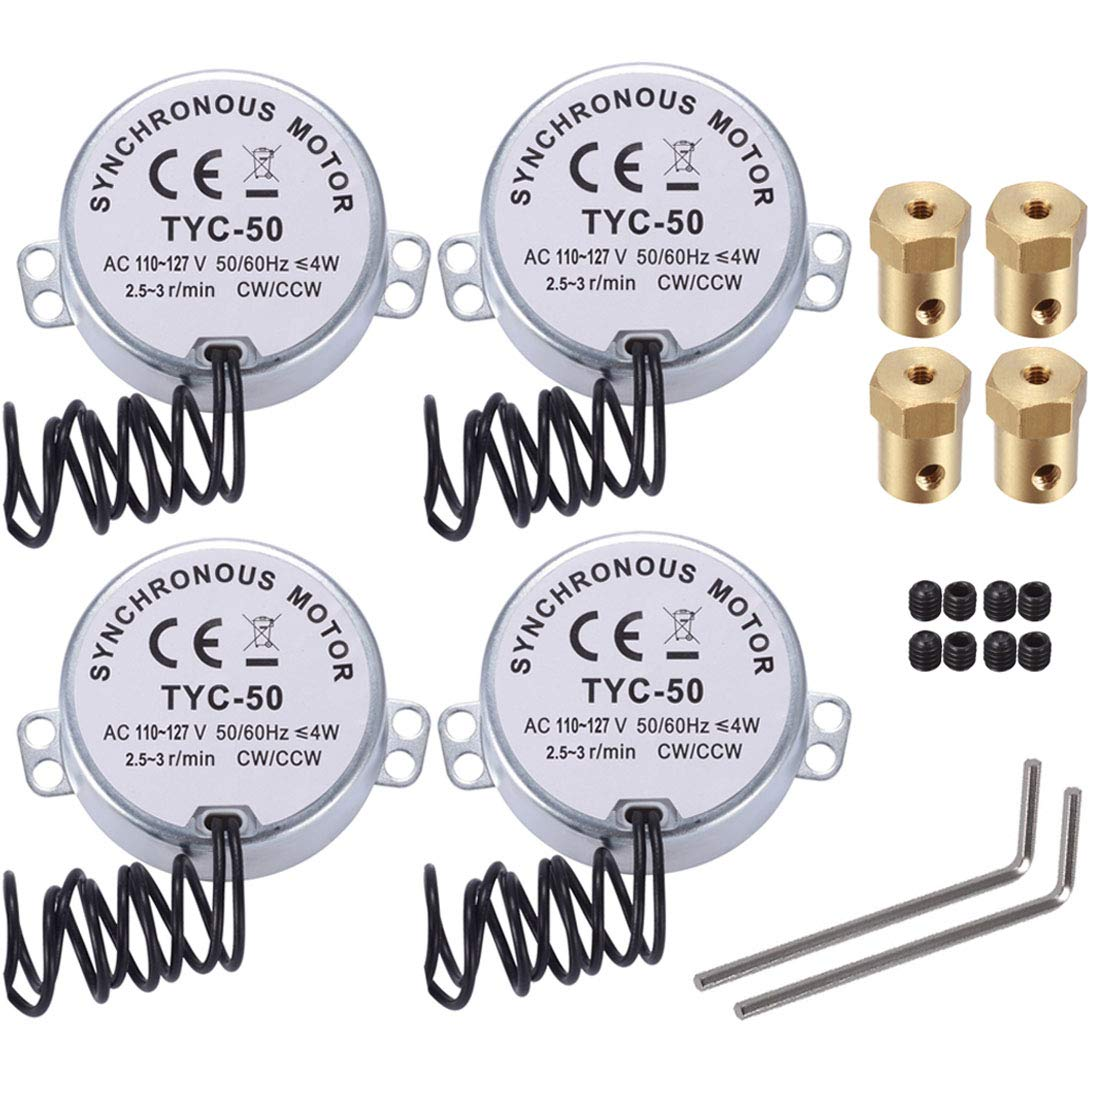 4 Pcs 2.5/3 RPM Electric Synchronous Synchron turntable Motor with 7mm Flexible Coupling Connector - AC 100V~127V 50/60Hz for Cup Turner, Turner Cup Rotator, Cuptisserie & Microwave Oven